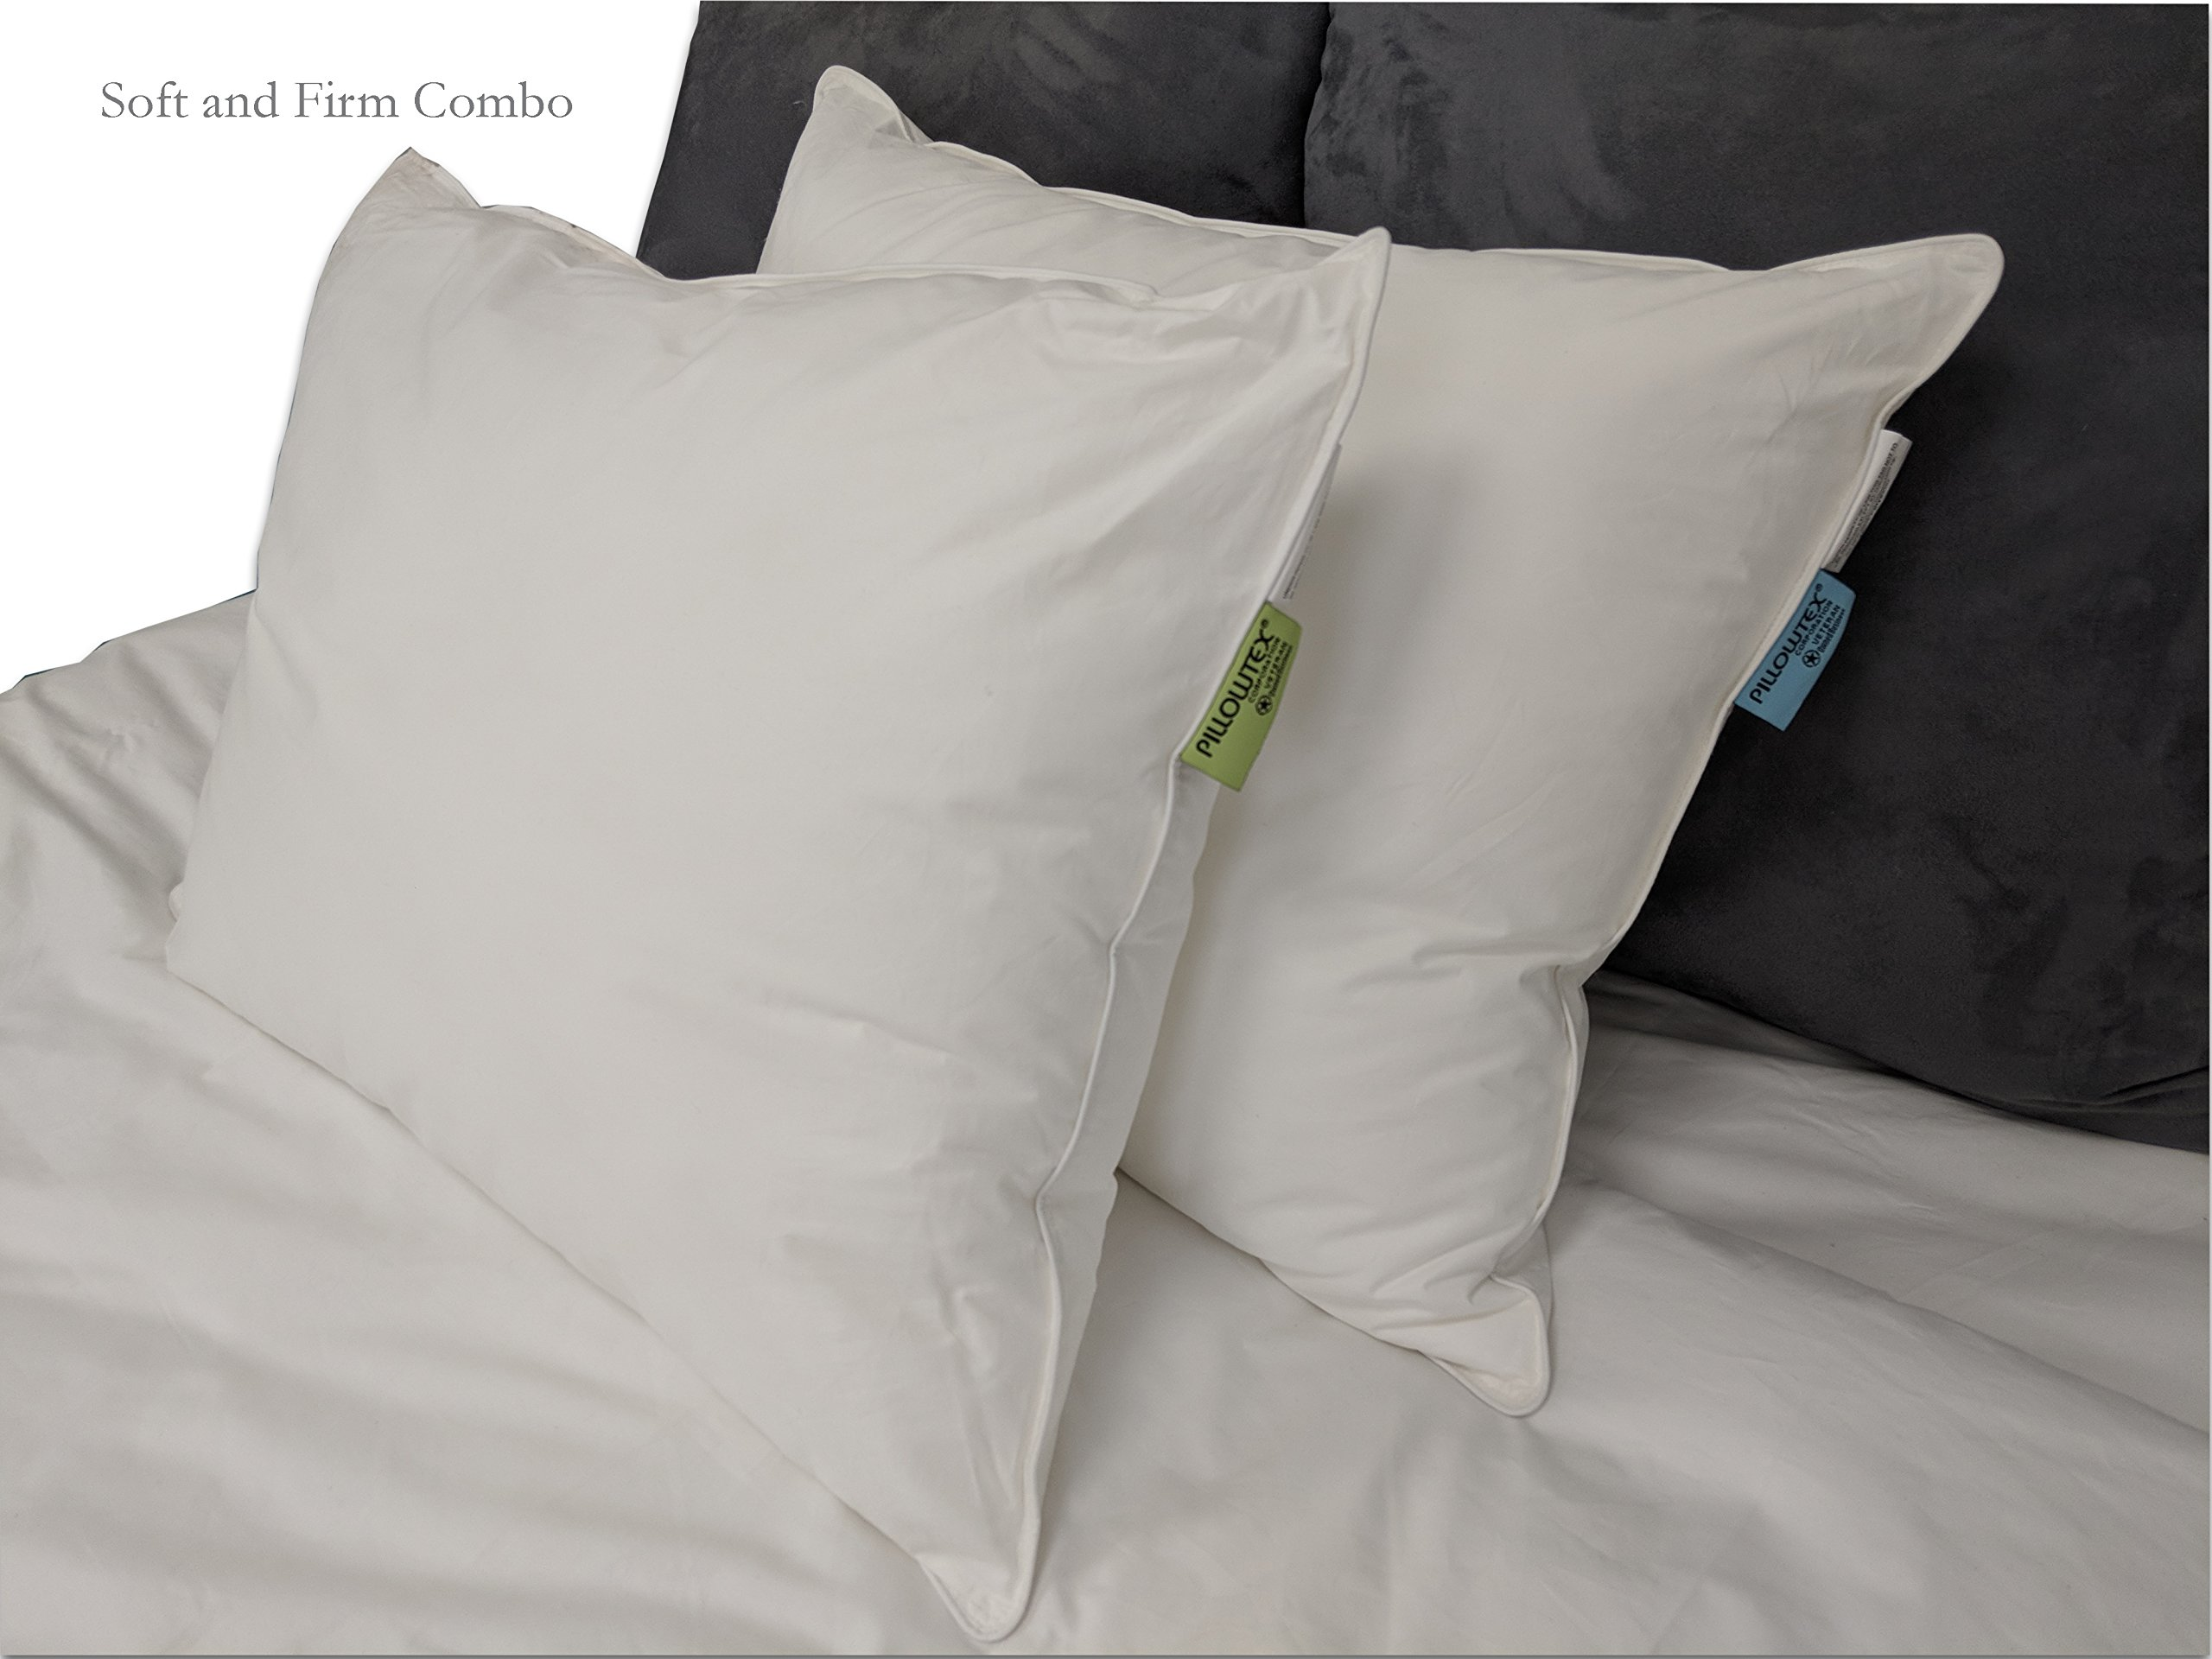 Pillows Similar to Choice Hotels (Standard (20''x26''), Soft) by Pillowtex (Image #2)